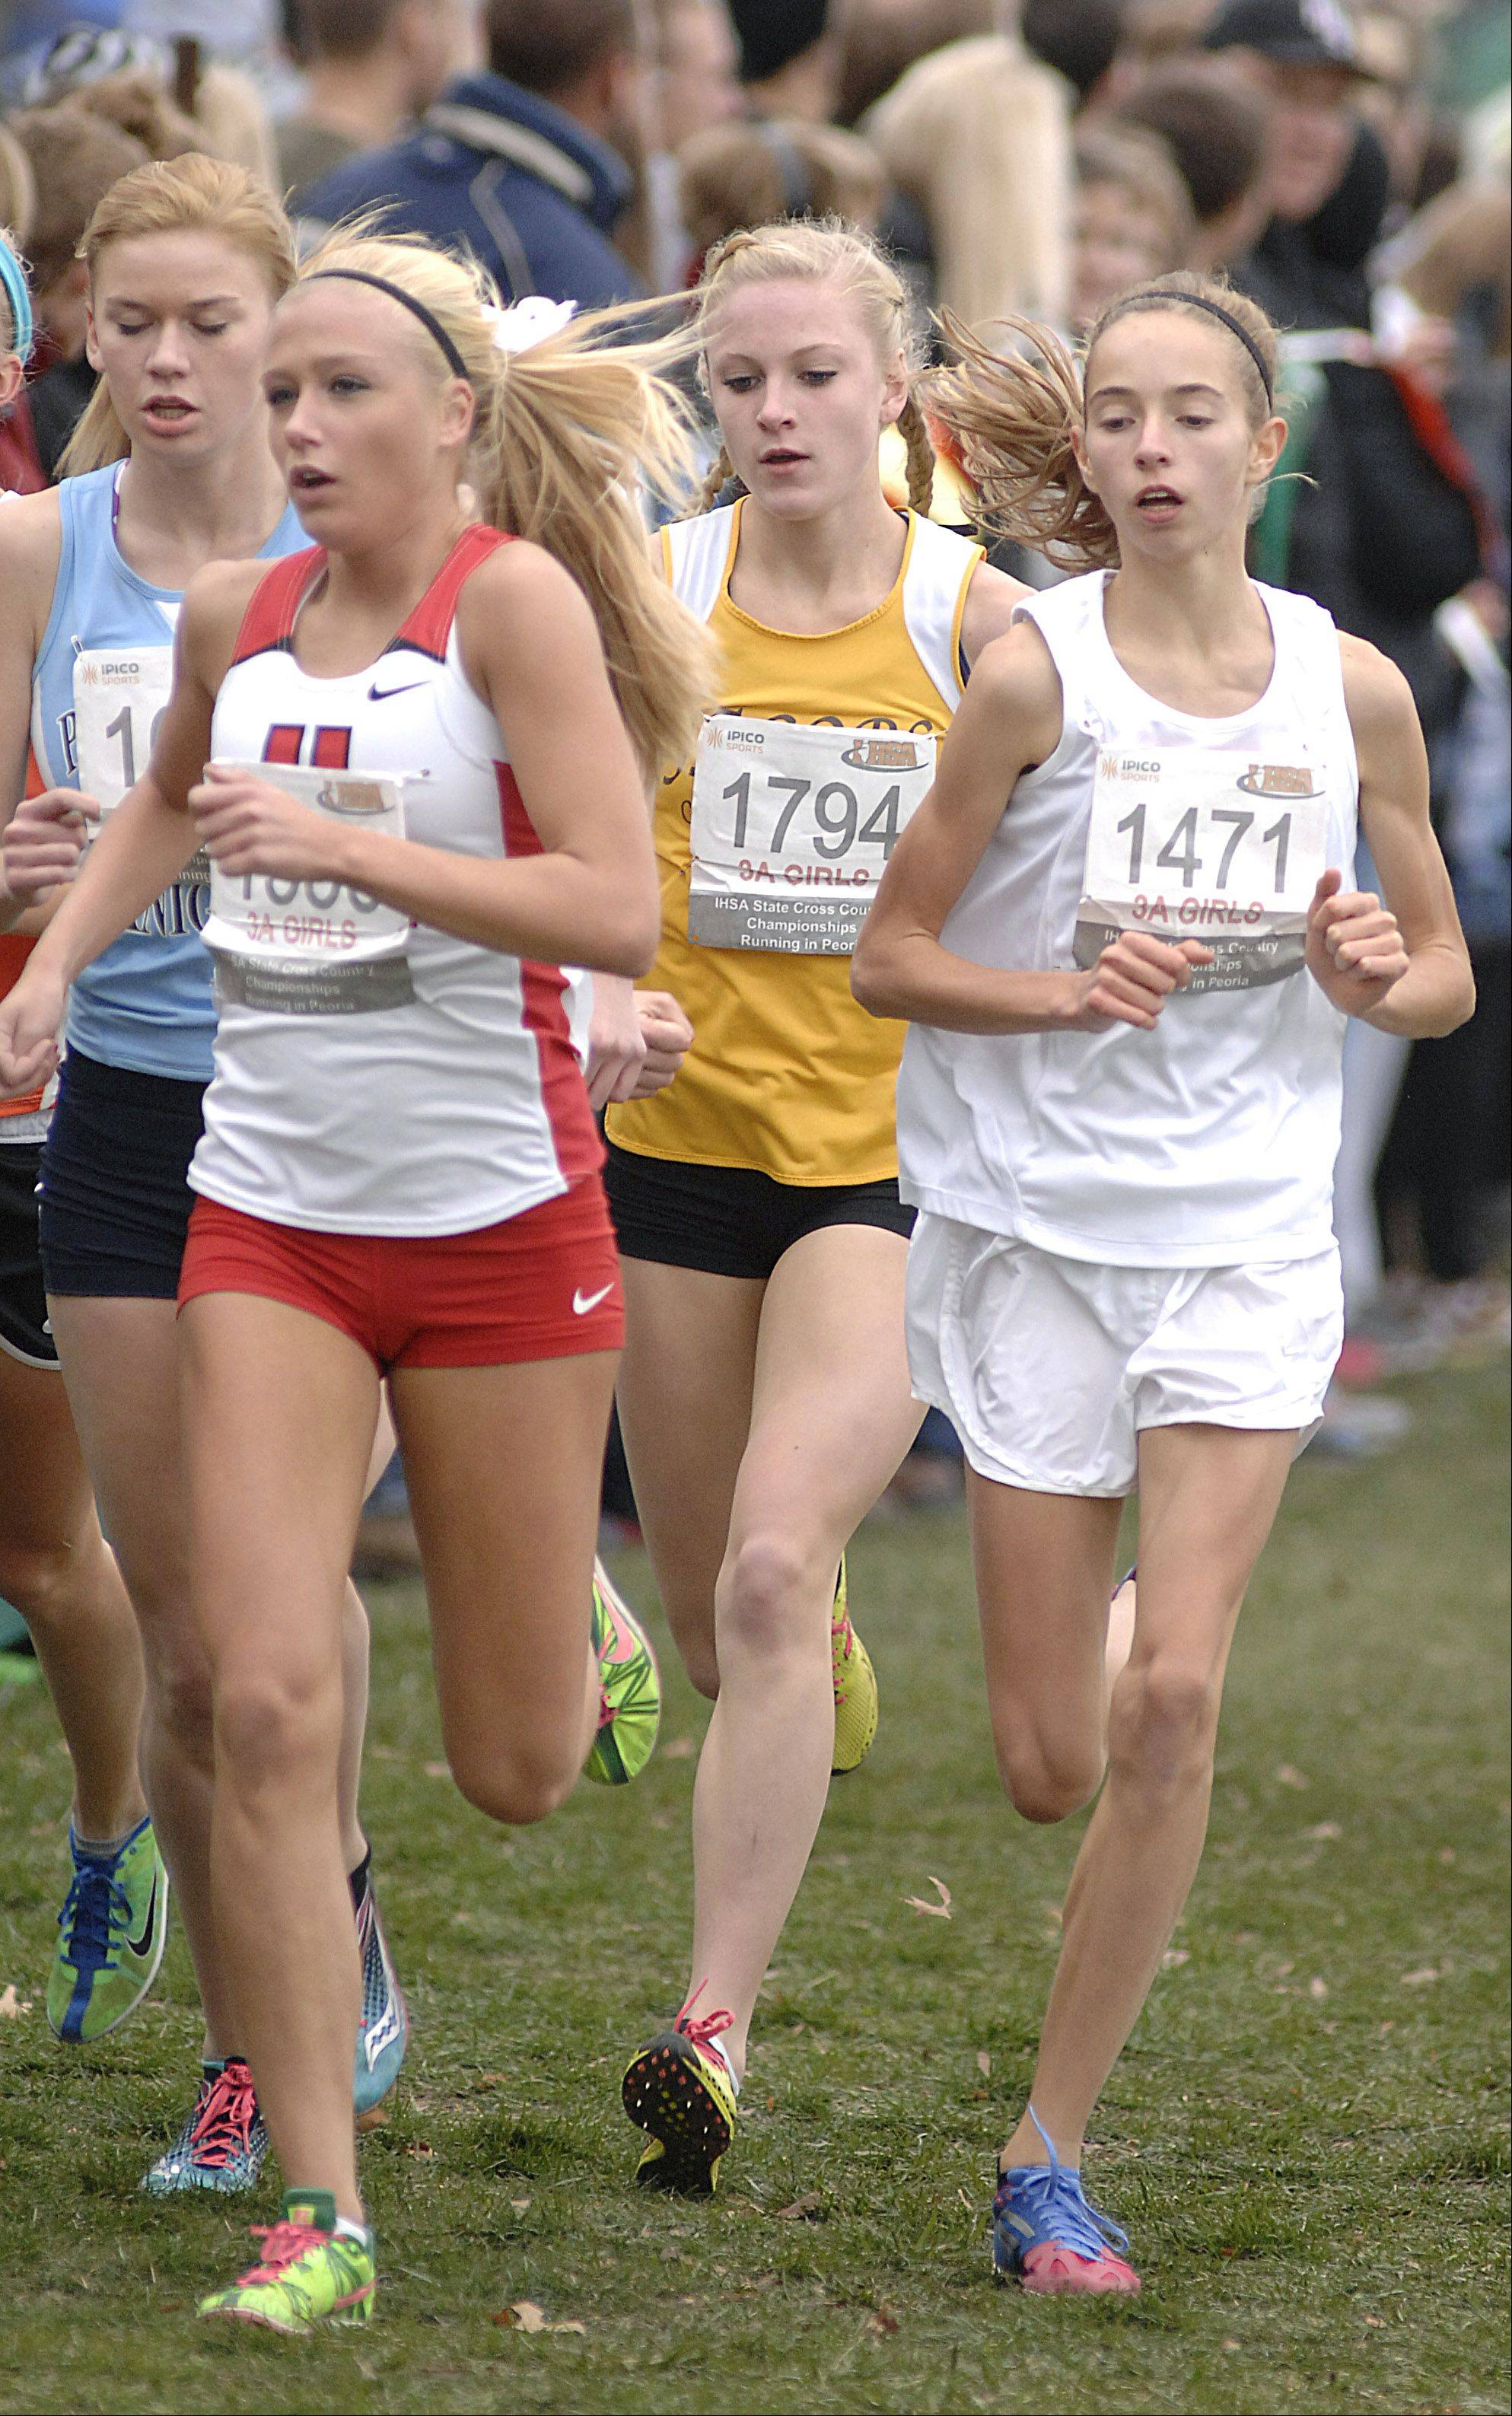 Jacobs' Lauren Van Vlierberge (1794) runs in the pack in the state cross country 3A final in Peoria on Saturday, November 3.